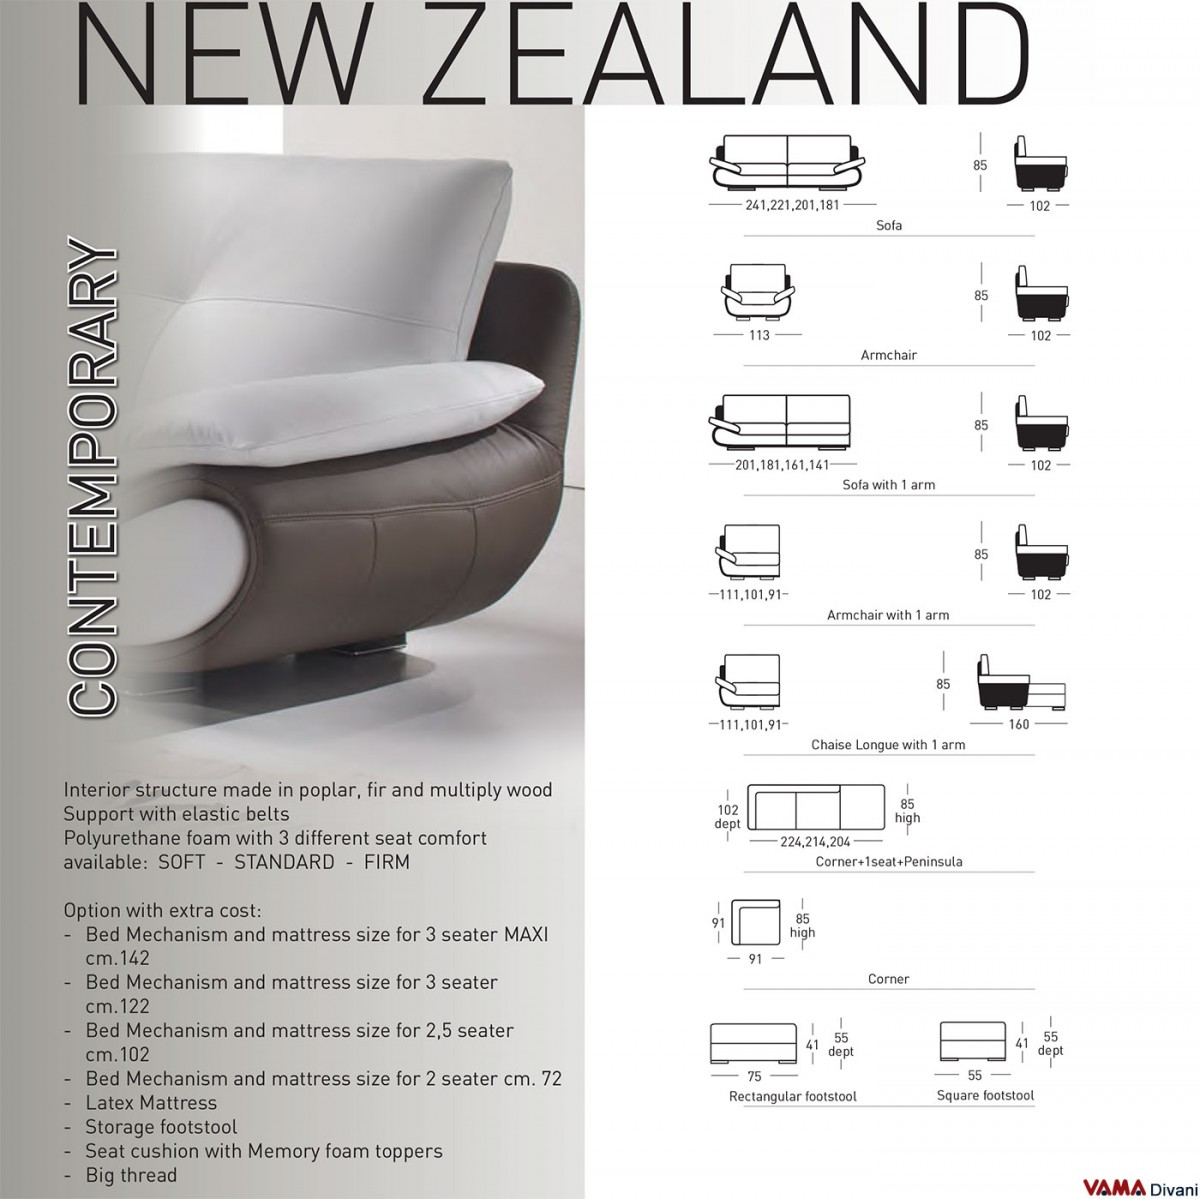 Leather Couches New Zealand: Contemporary White Leather Sofa